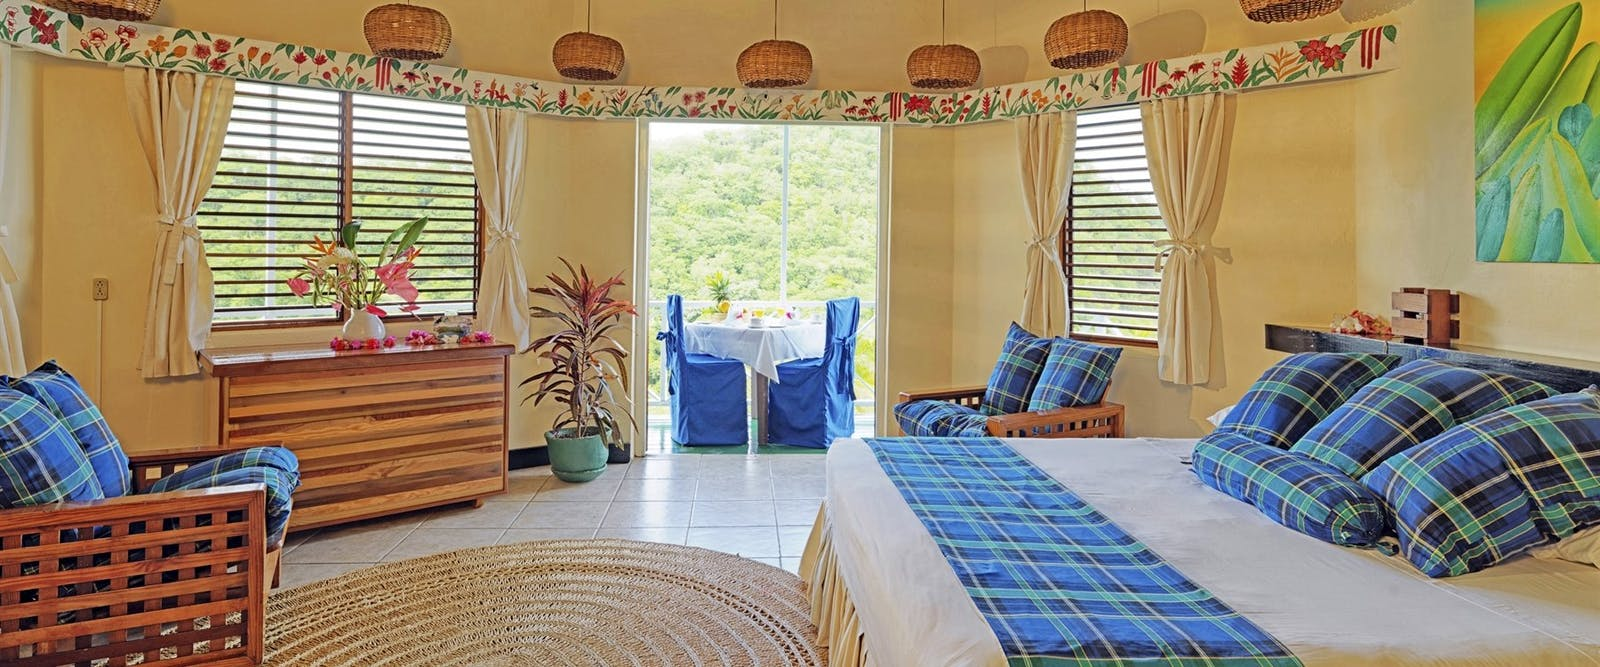 Superior Room at Anse Chastanet, St Lucia